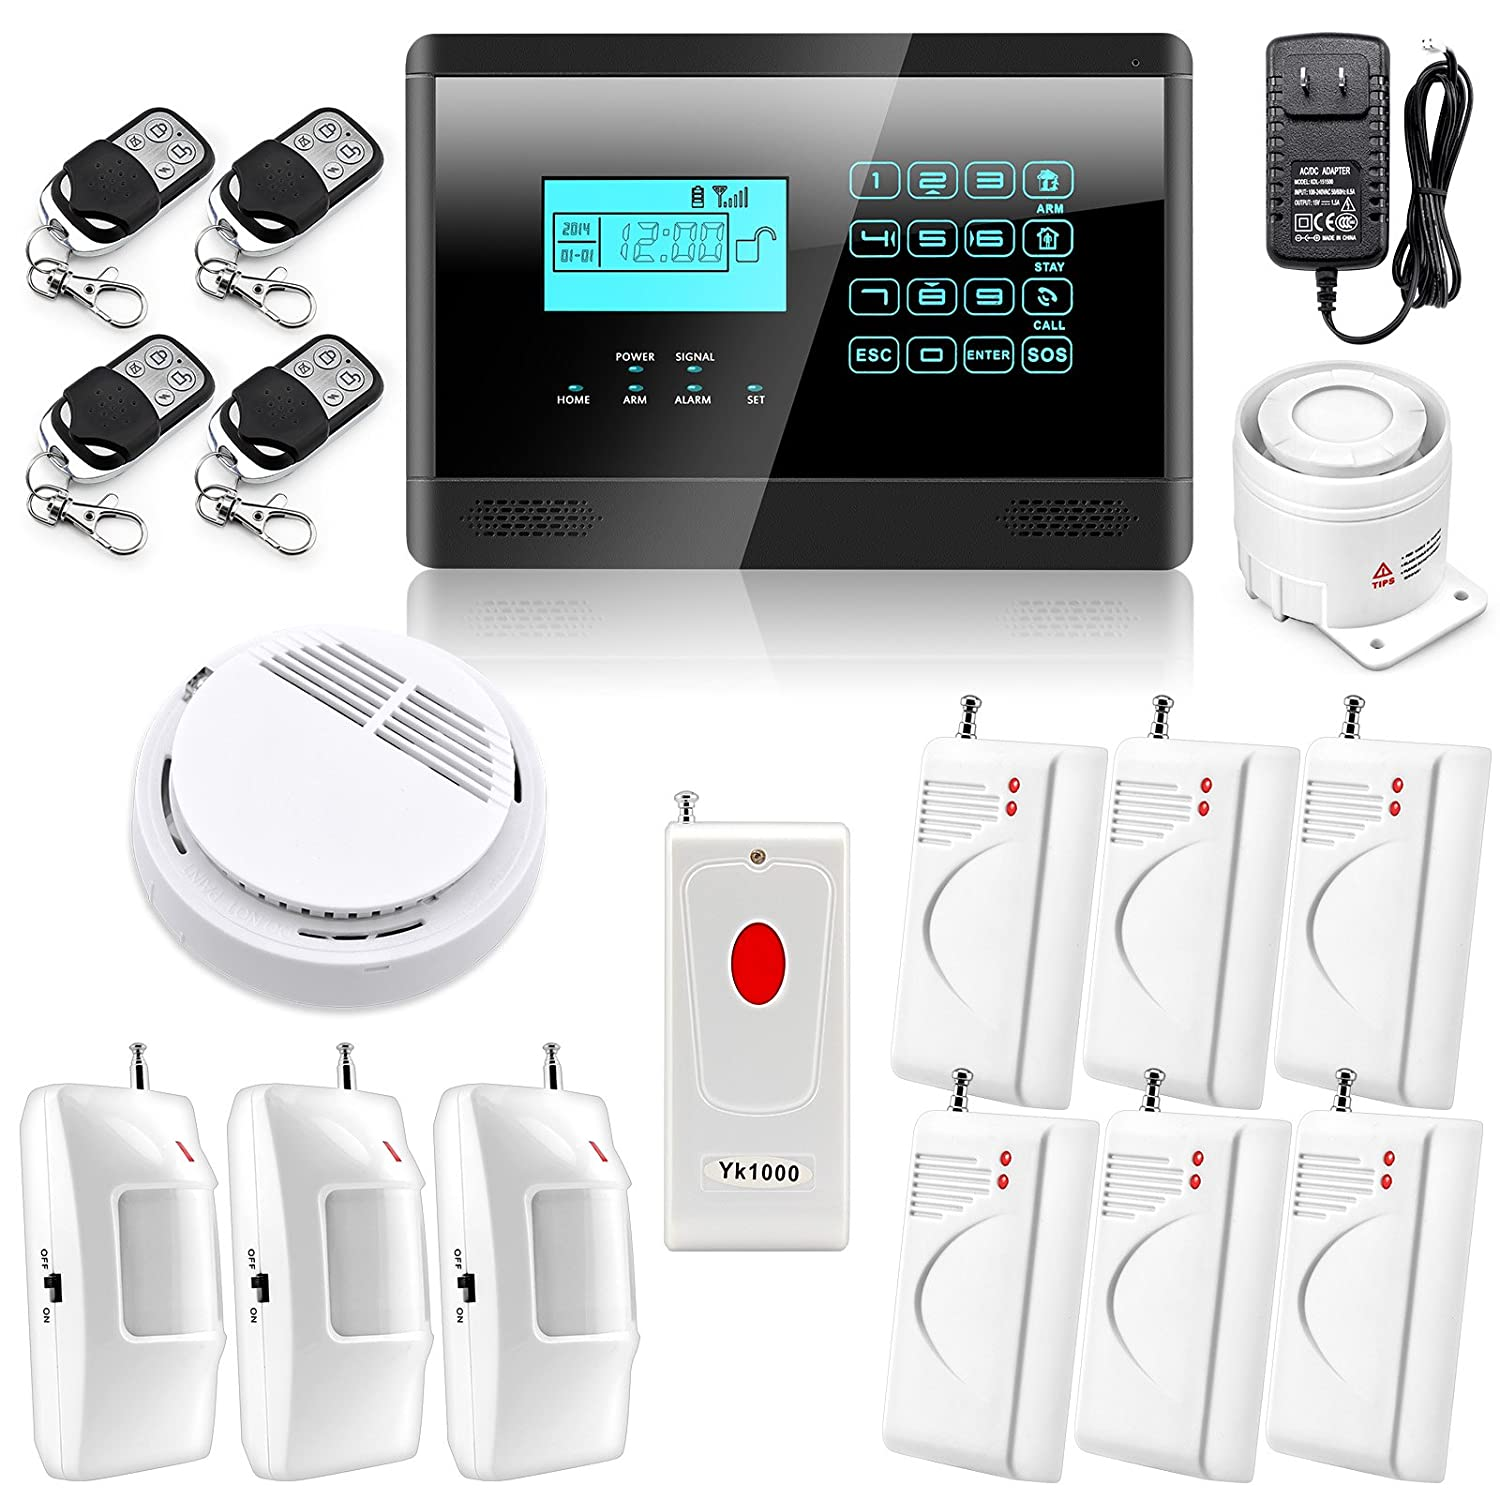 the 50 best smart home security systems top home automation products for monitoring securing. Black Bedroom Furniture Sets. Home Design Ideas